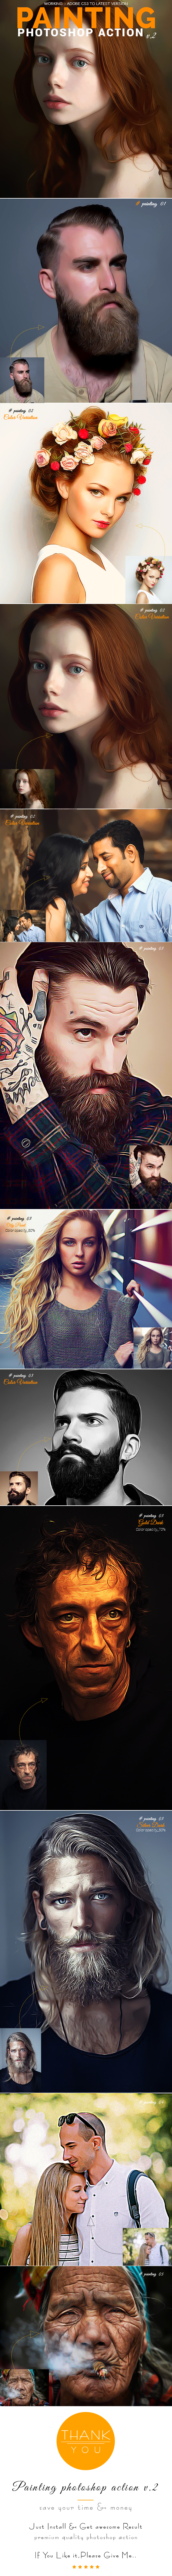 Painting Photoshop Action v.2 - Photo Effects Actions